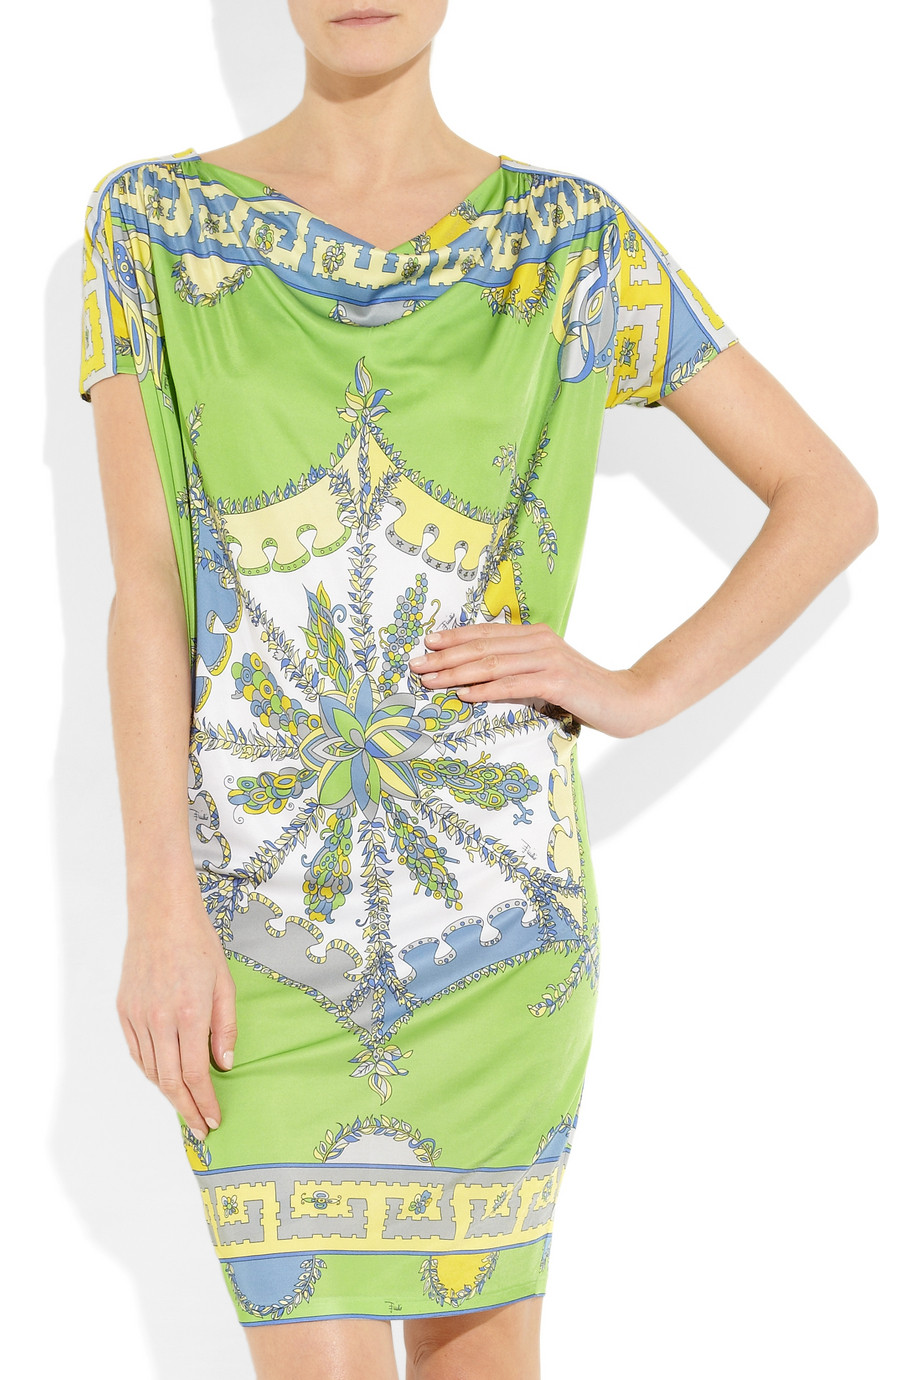 Emilio Pucci Printed Jersey Dress In Green Multicolored